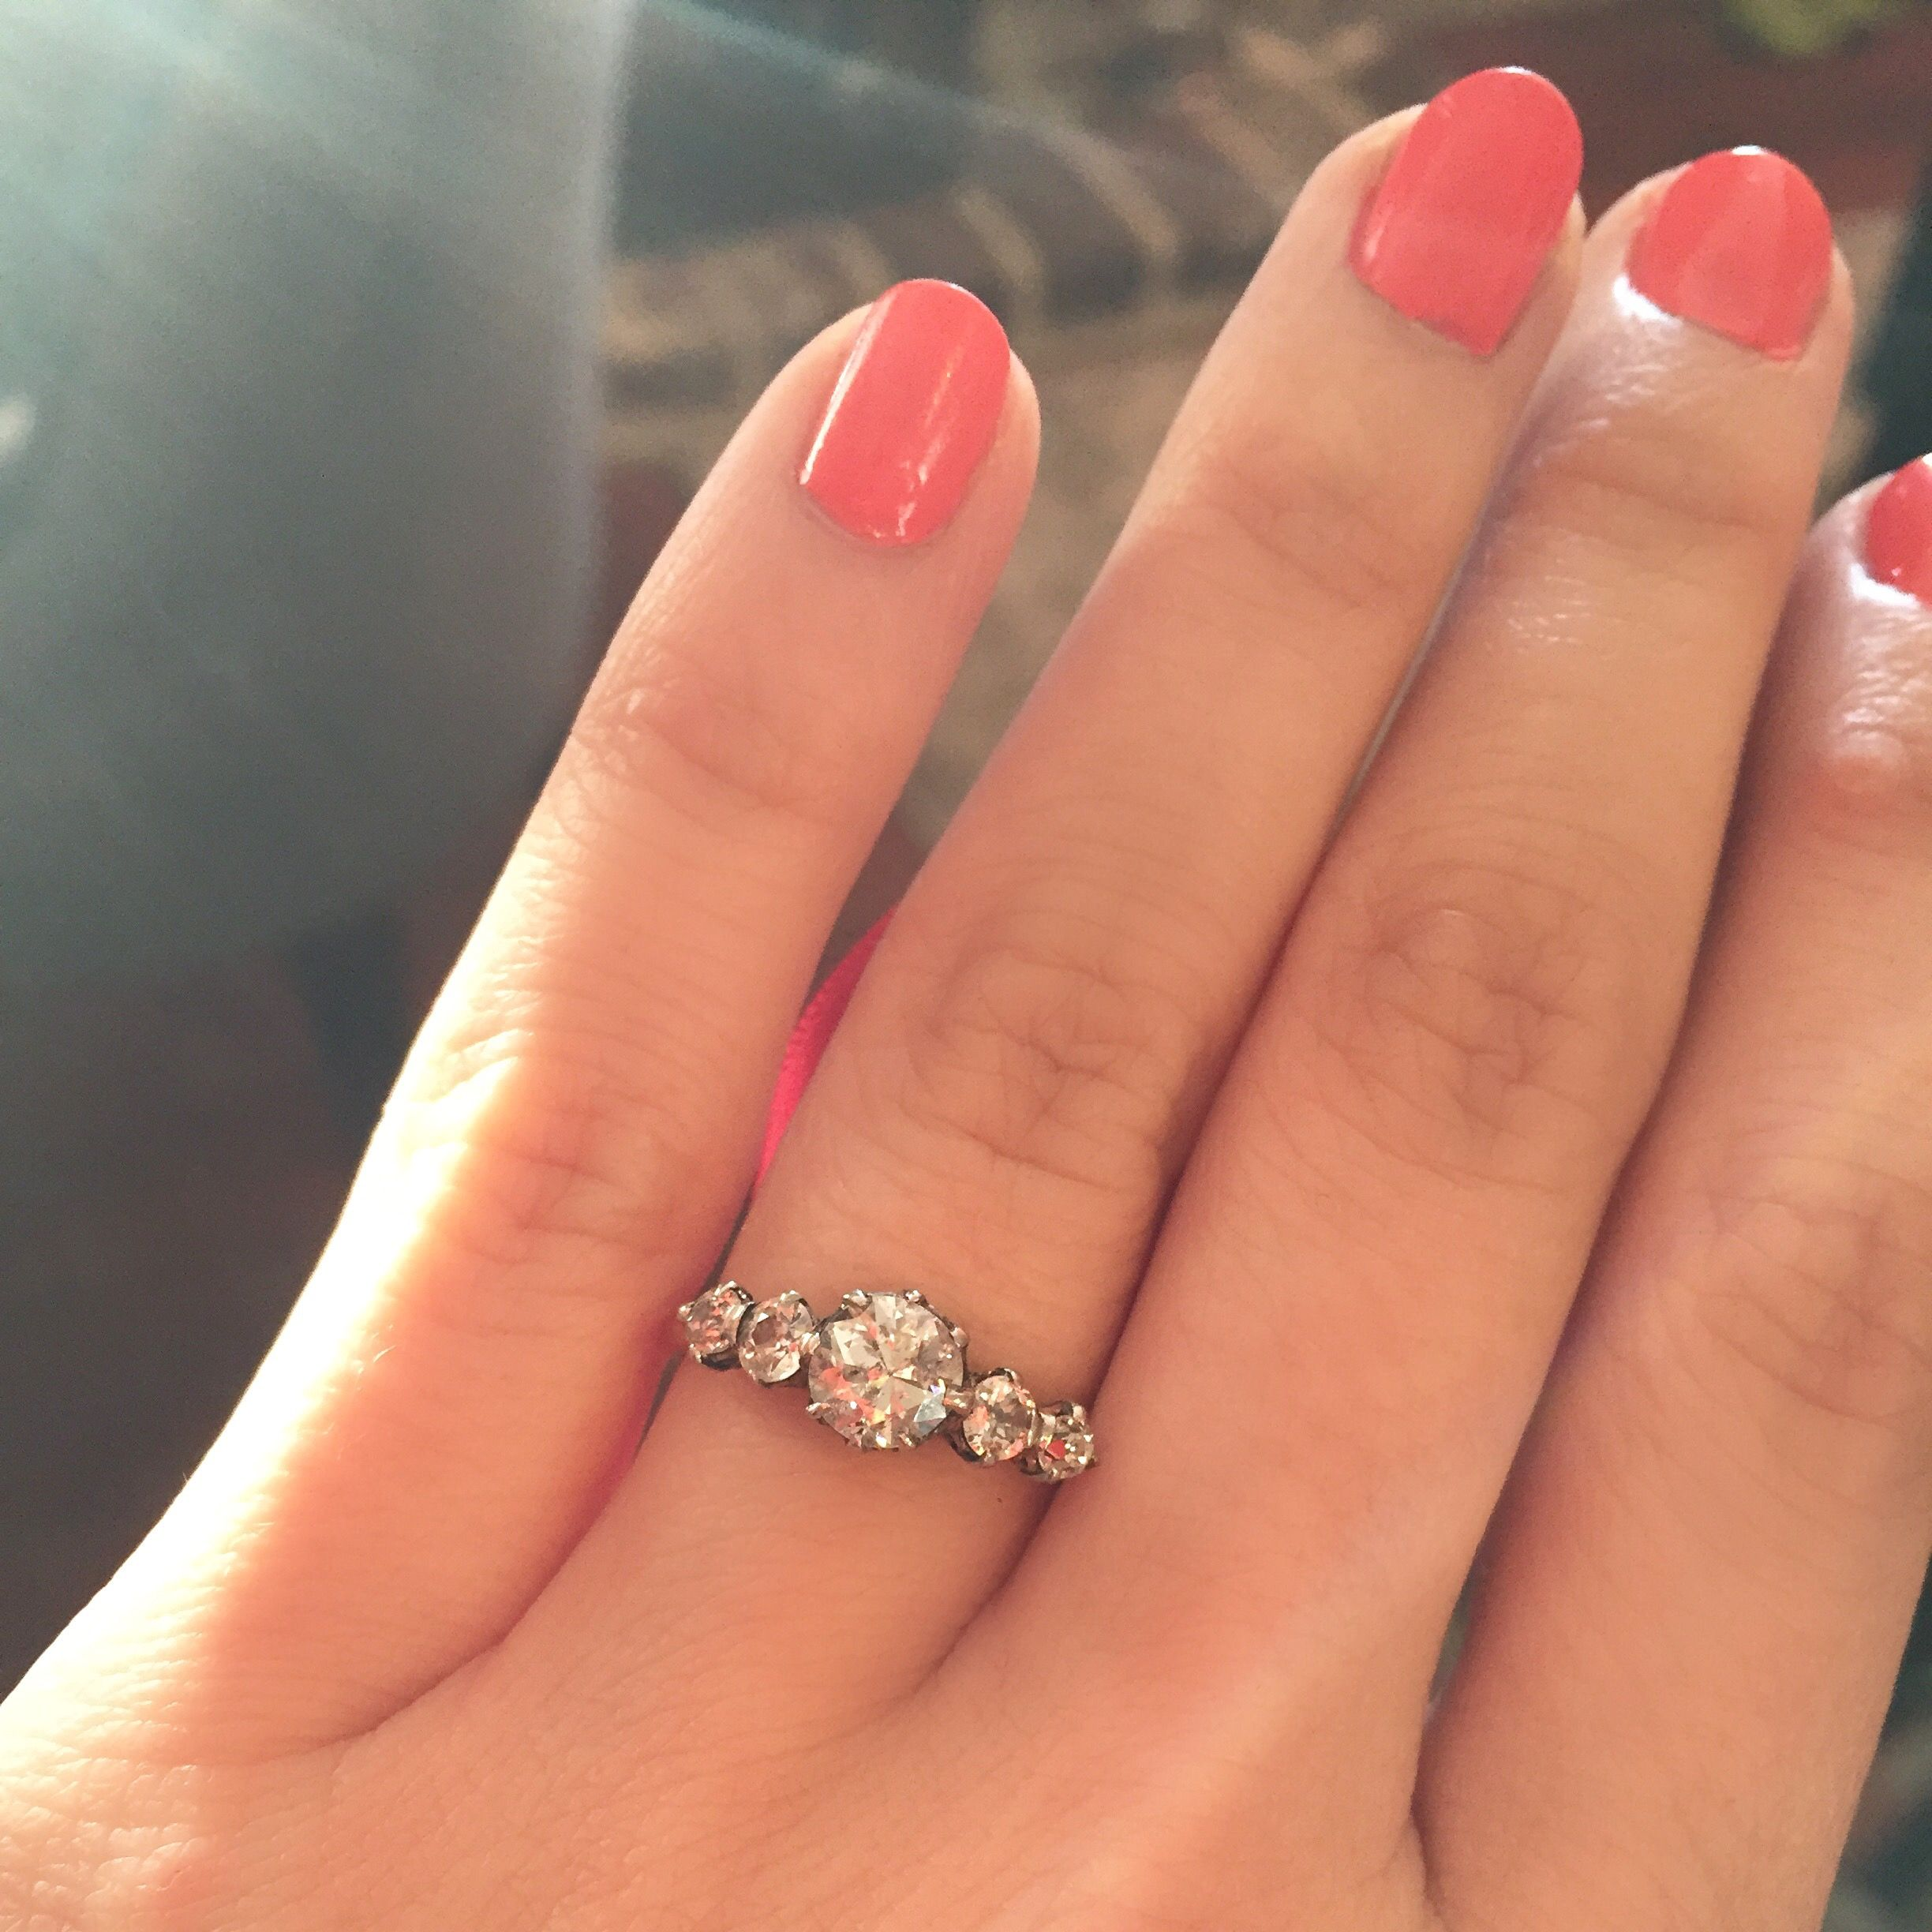 Gorgeous Vintage 5 Stone Engagement Ring With Old European Cut Diamonds  Stunning!